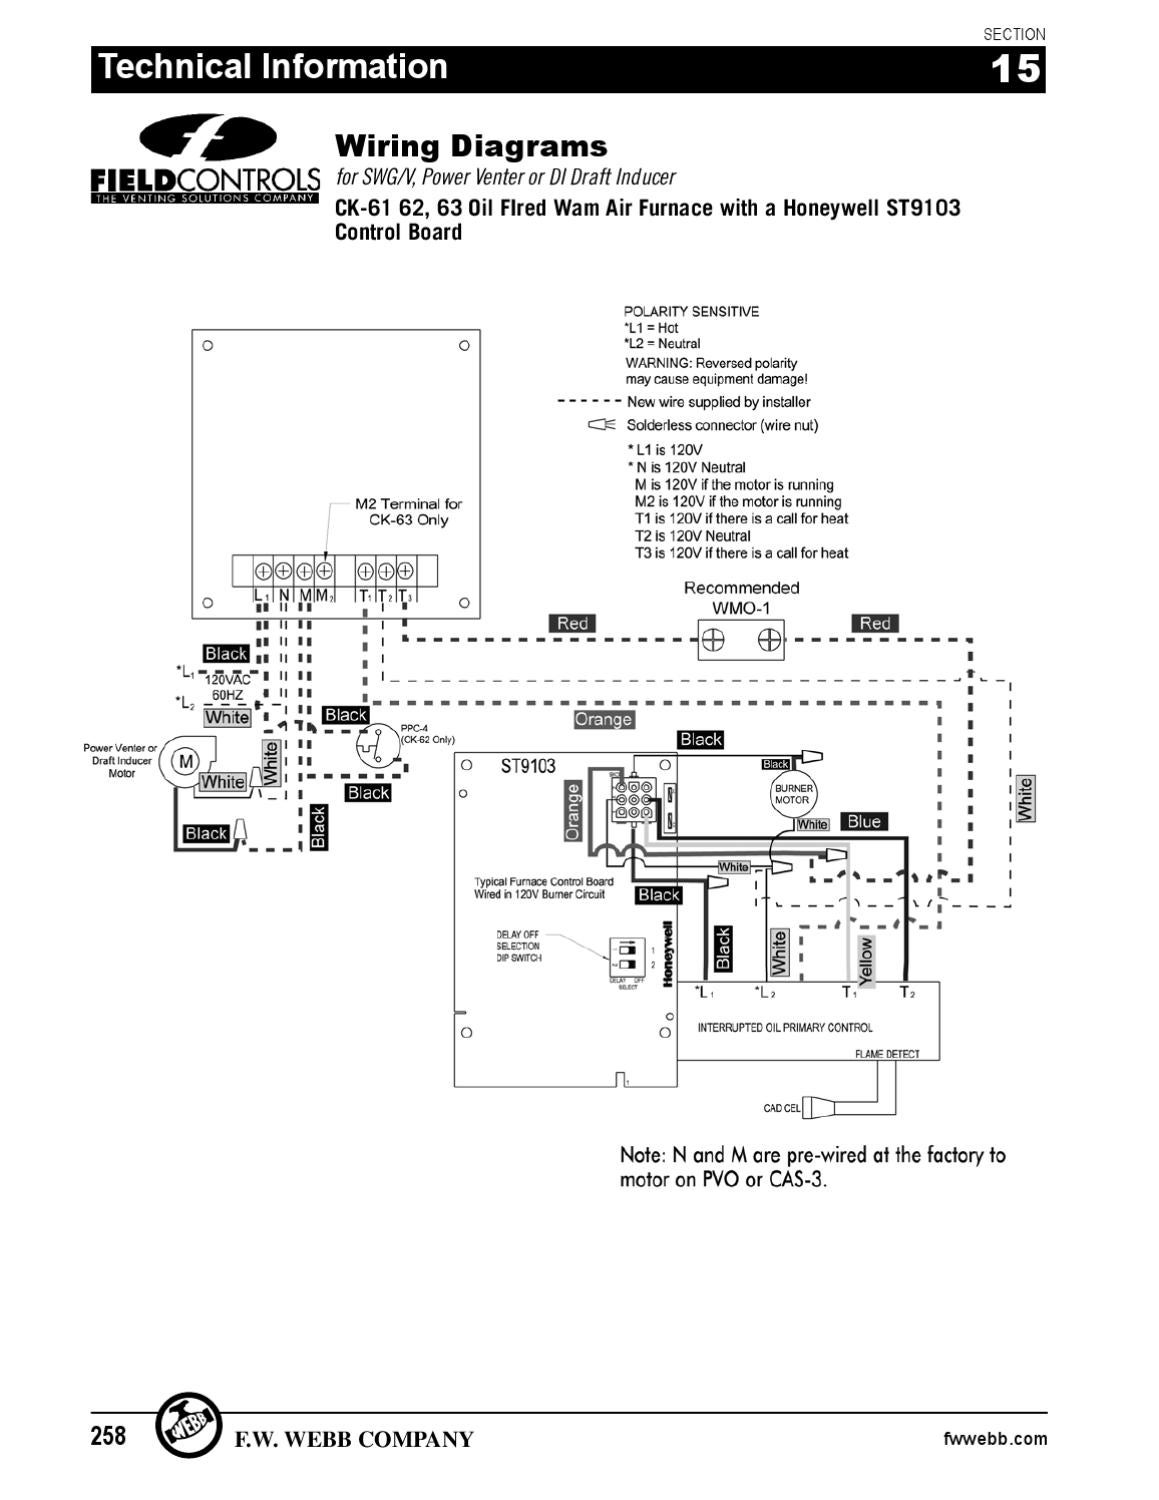 Field Controls Ck63 Wiring Diagram